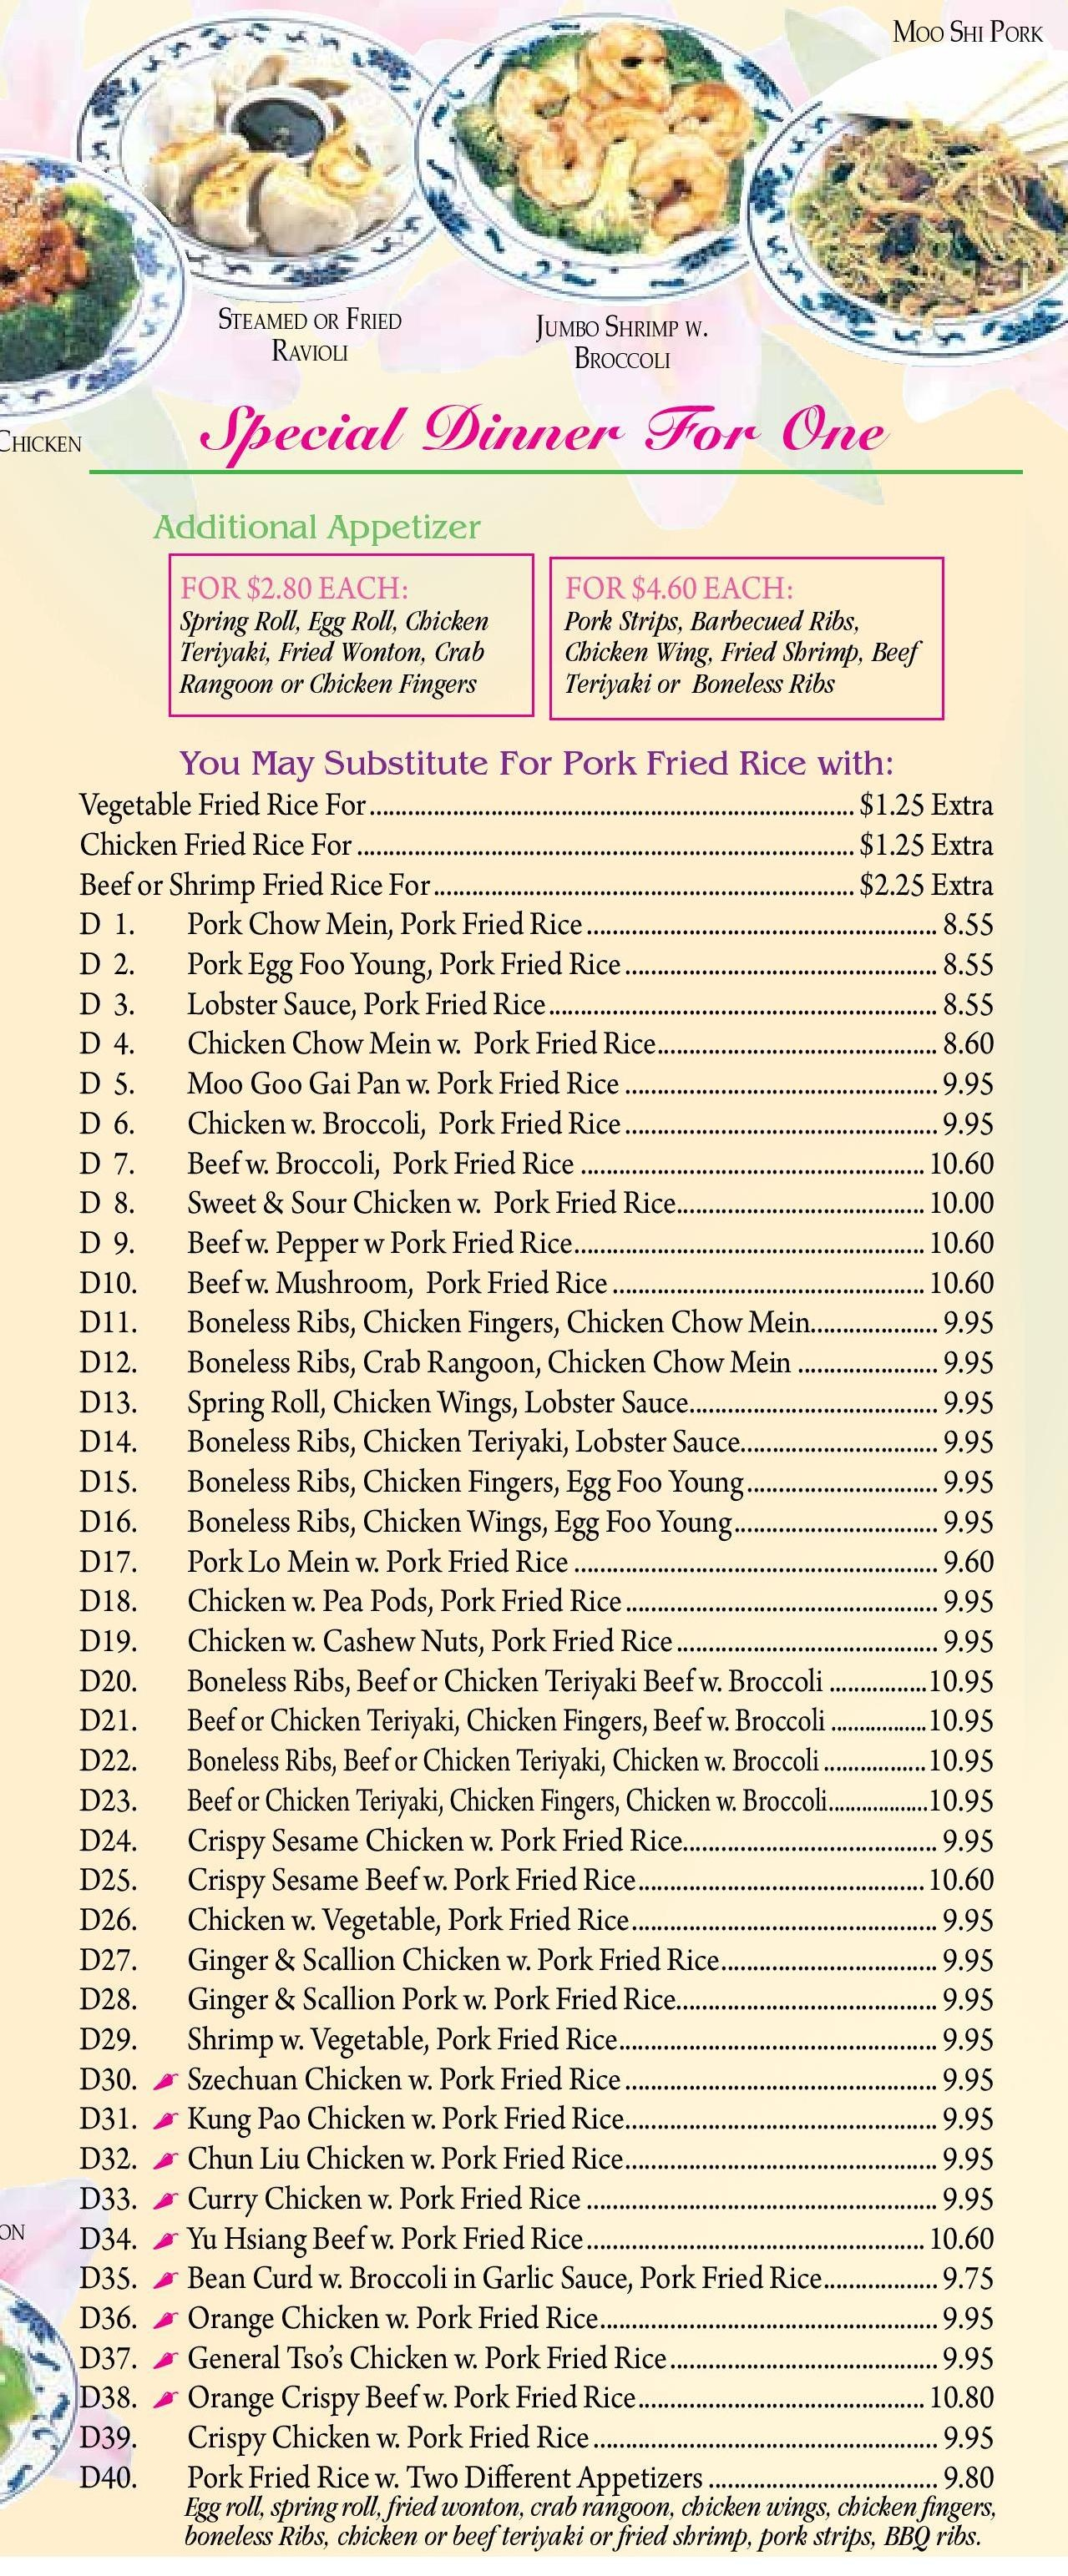 Mass Cut Coupons / Free Food Coupons Mailed To Me - Free Printable Hair Cuttery Coupons